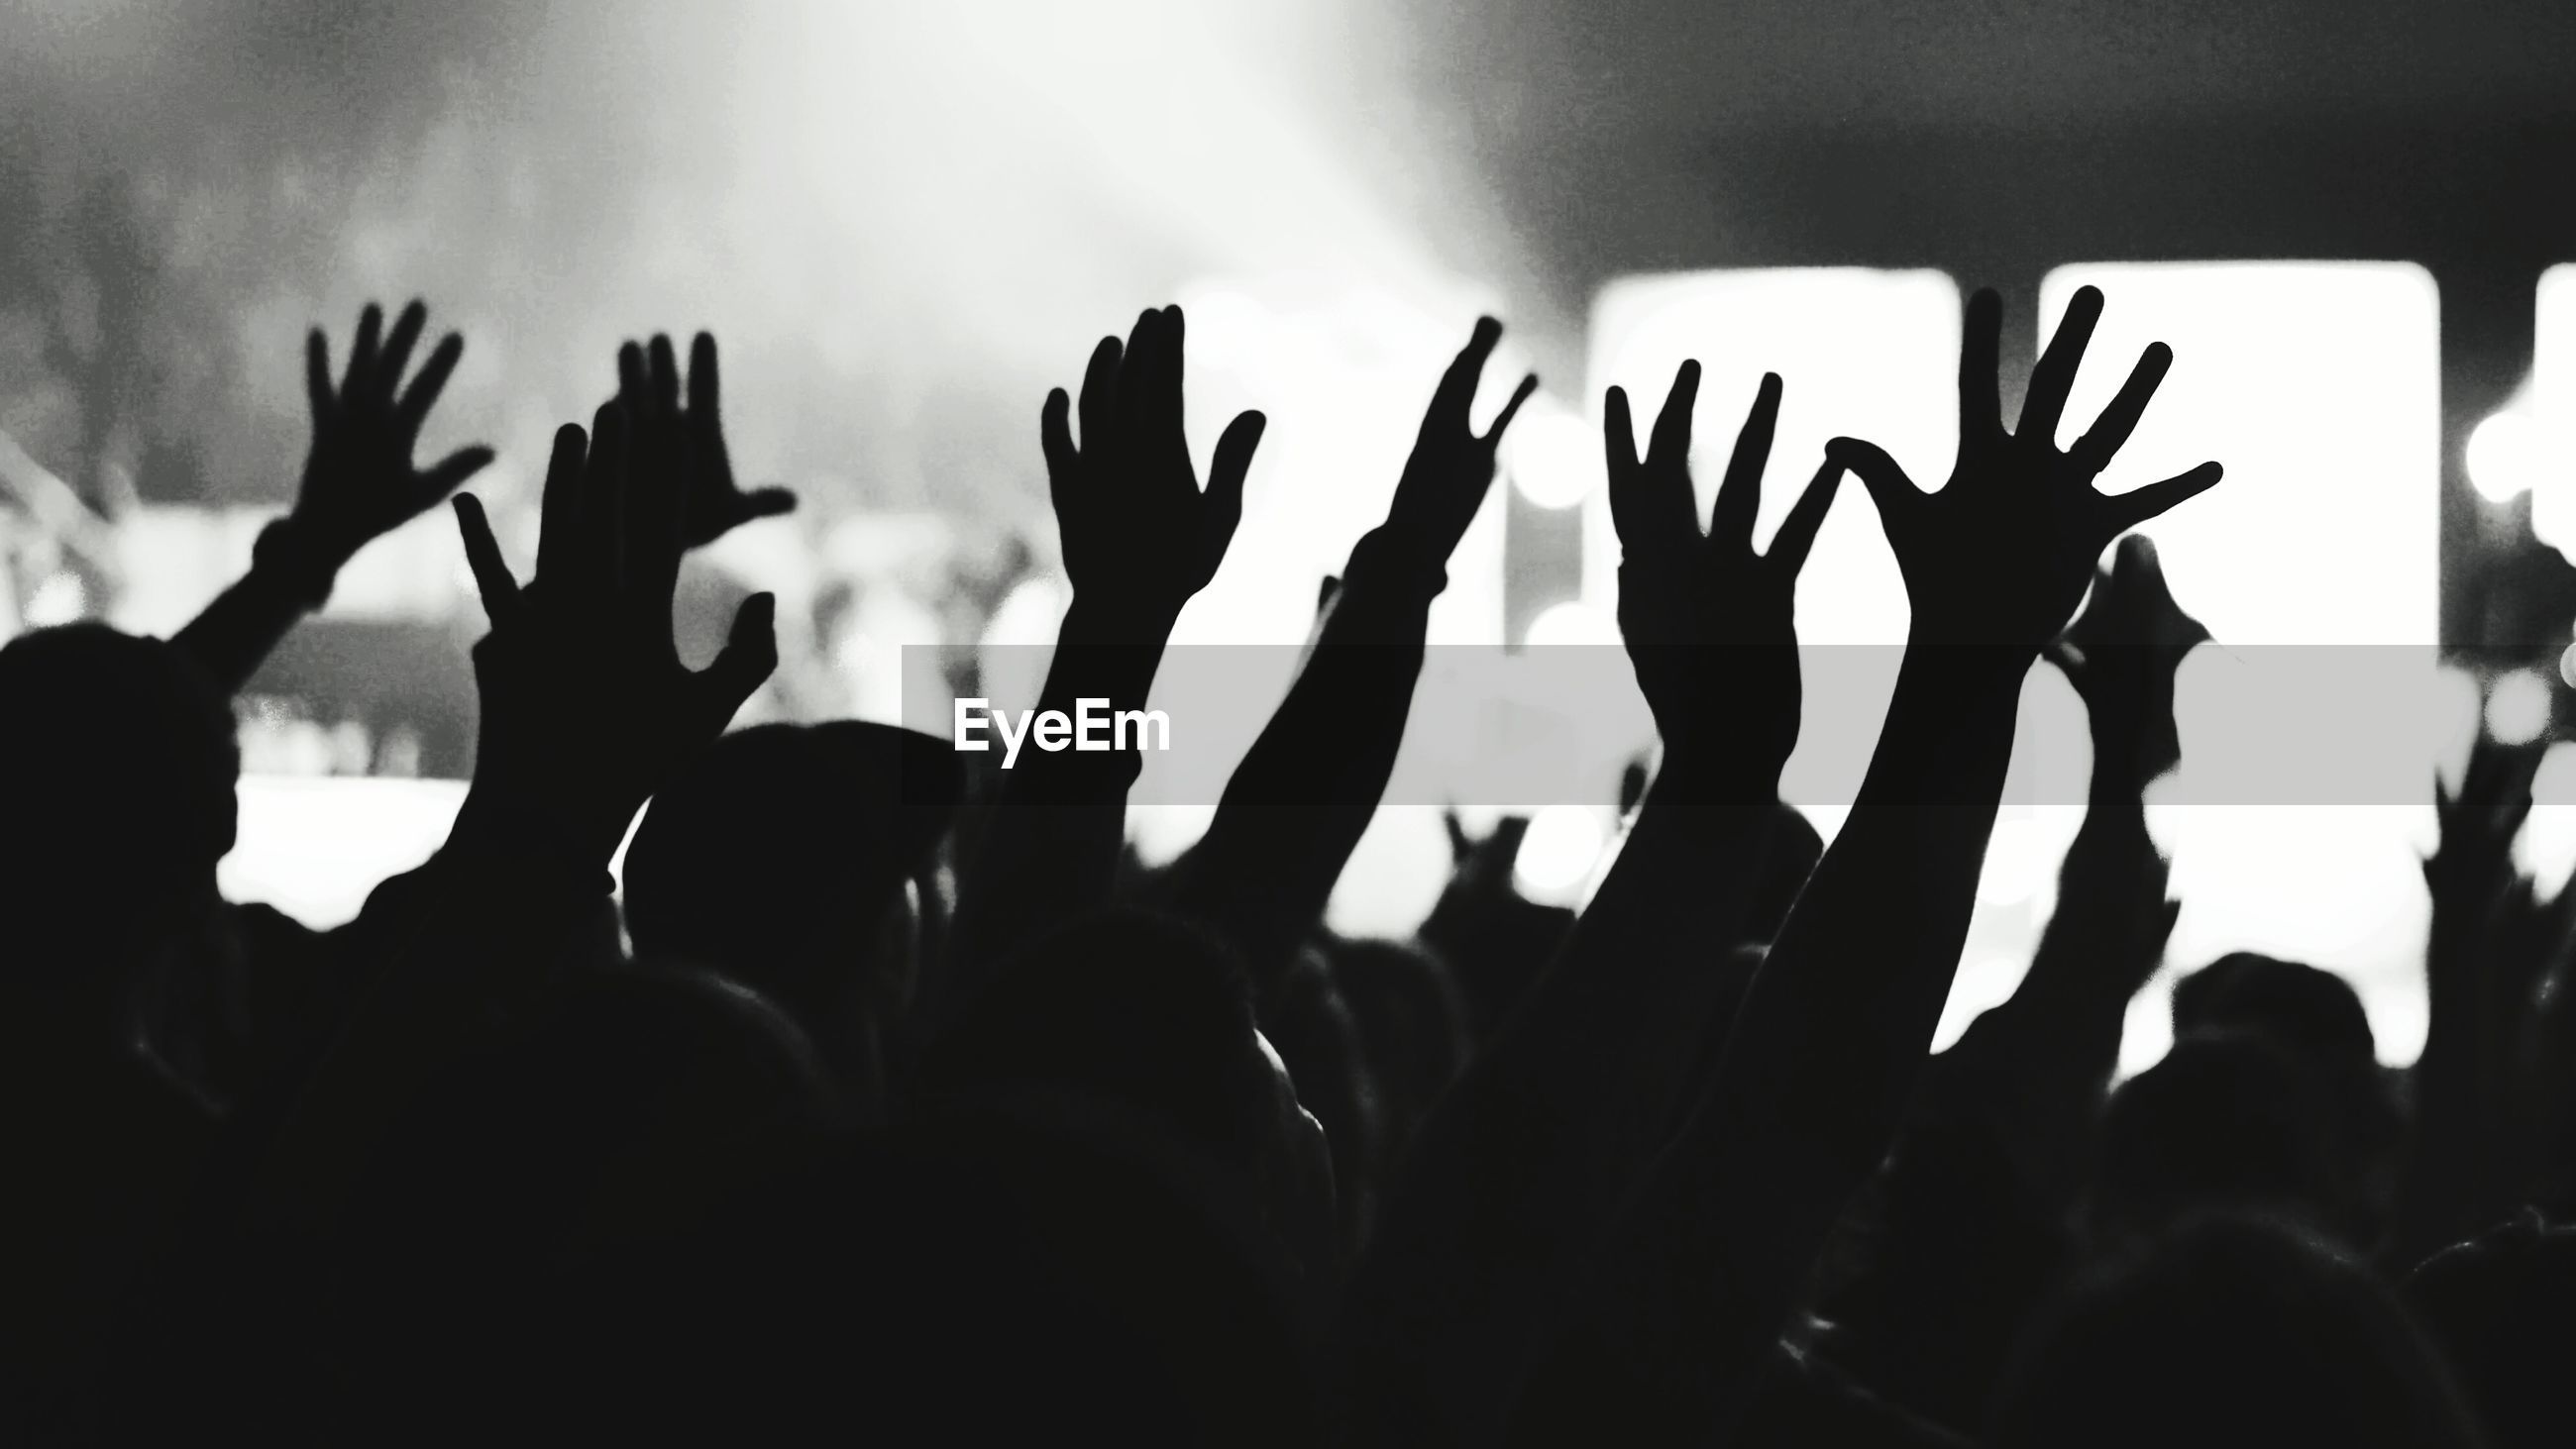 Silhouette people with arms raised during music concert